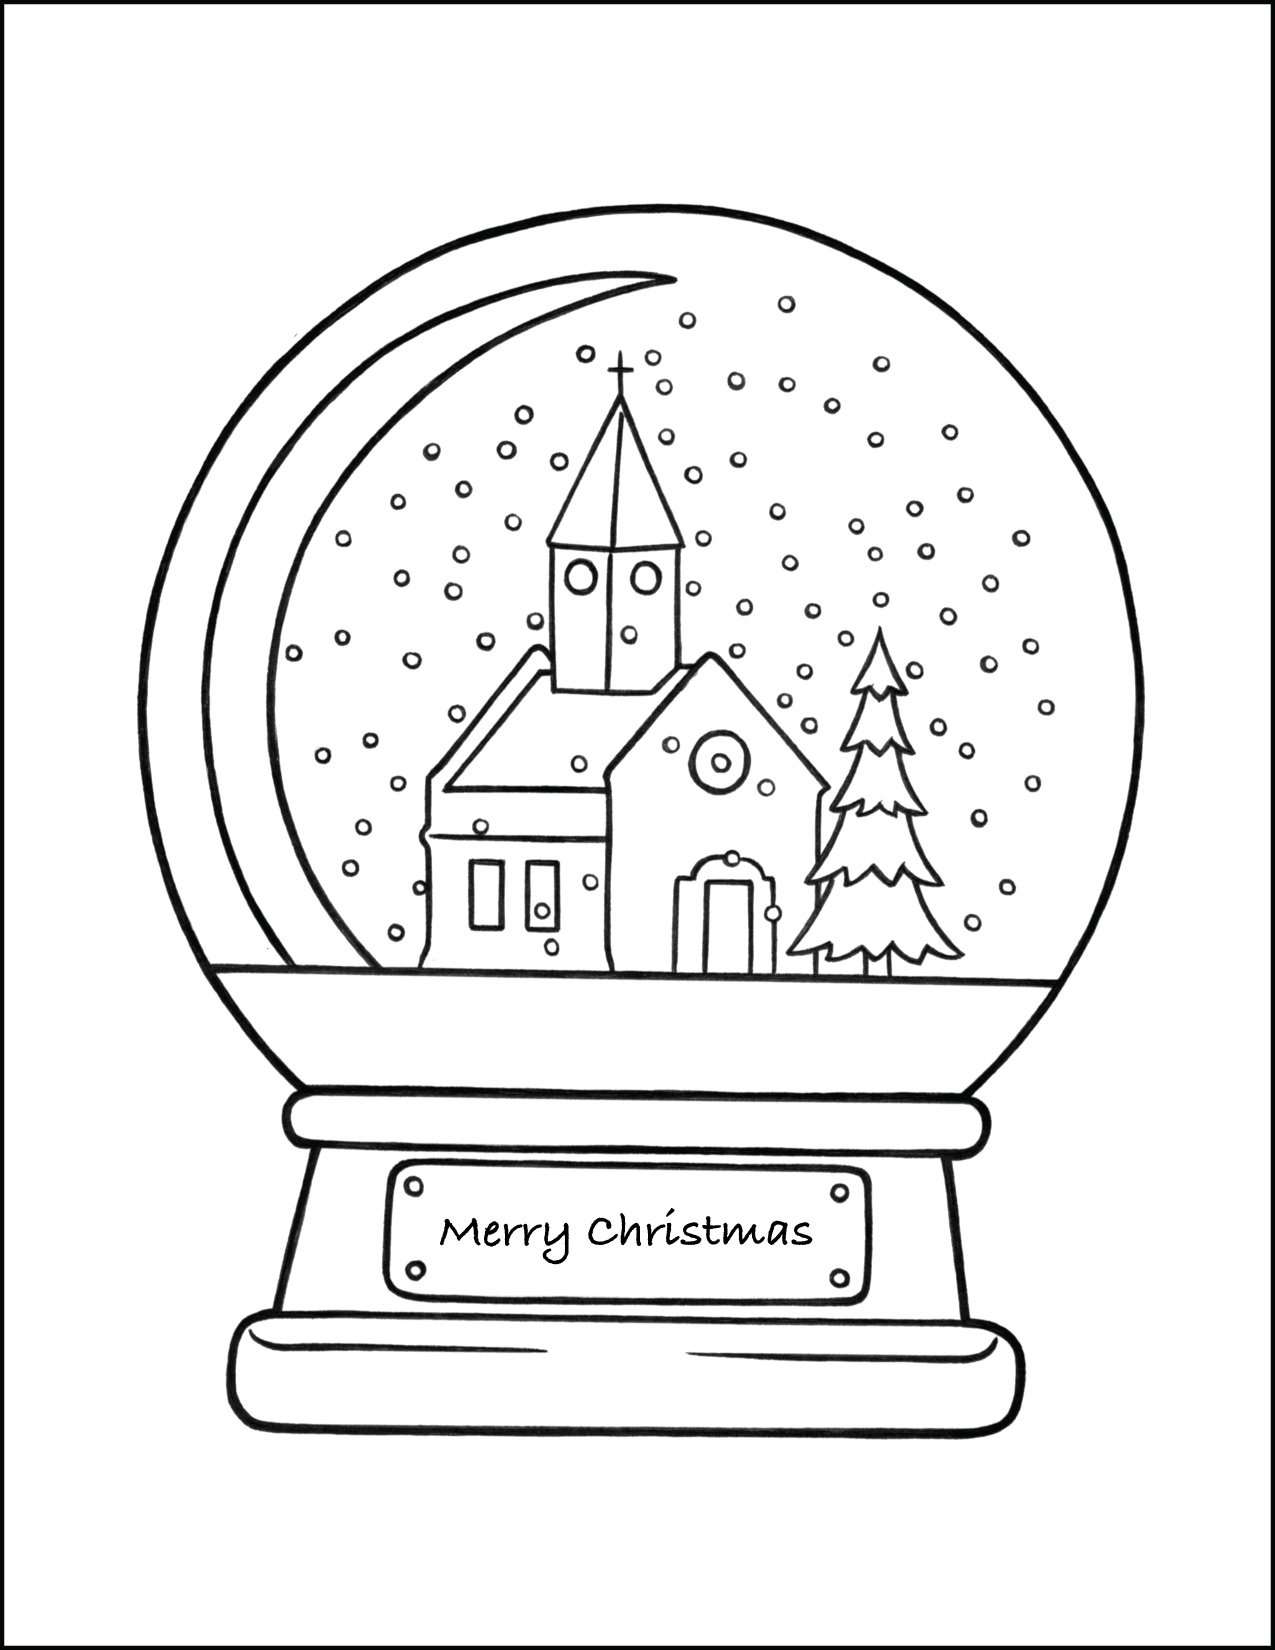 christmas snow globe coloring snowglobe cnt mls books in bulk halloween cards to make coloring pages Snow Globe Coloring Page